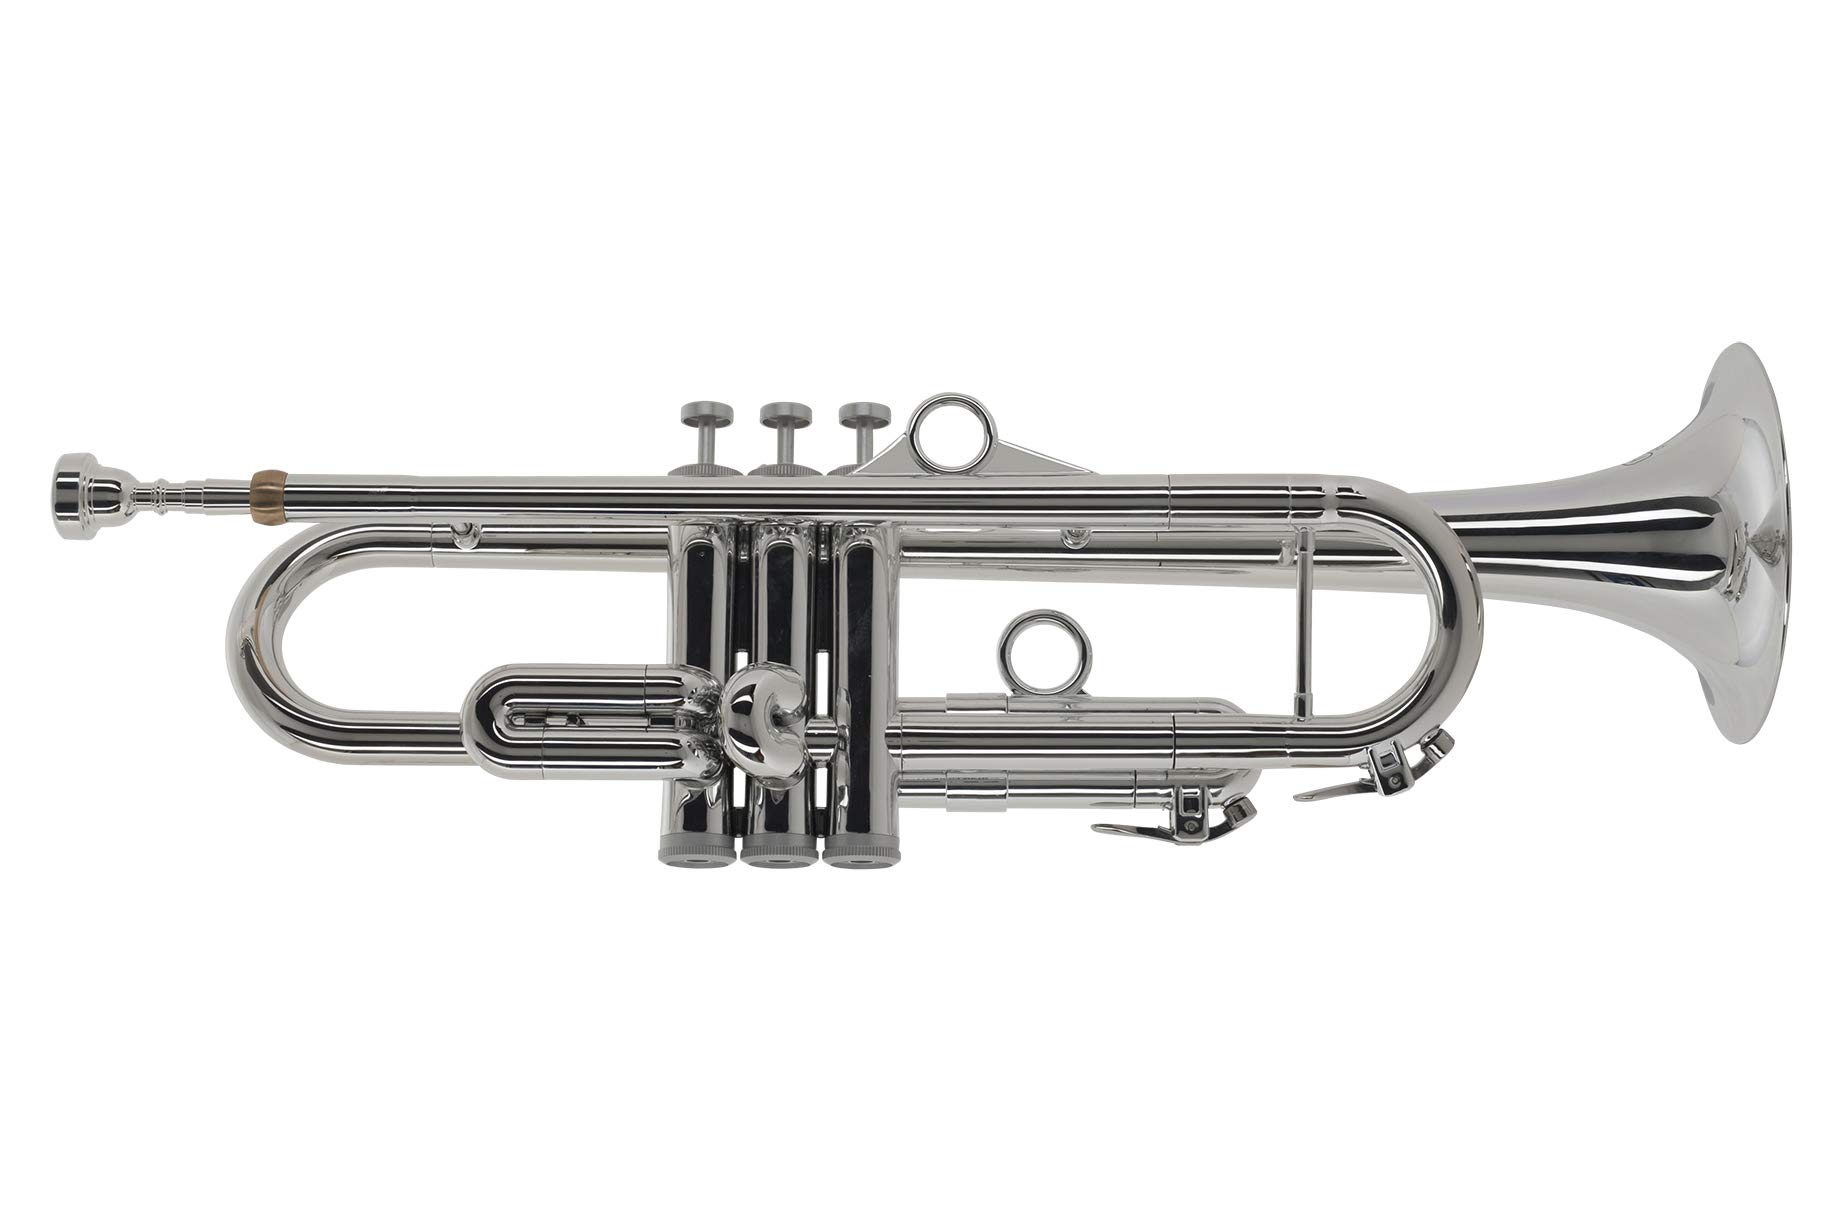 New Hytech Bb Ptrumpet Voted No1 Tools for Schools 2019 Namm Silver